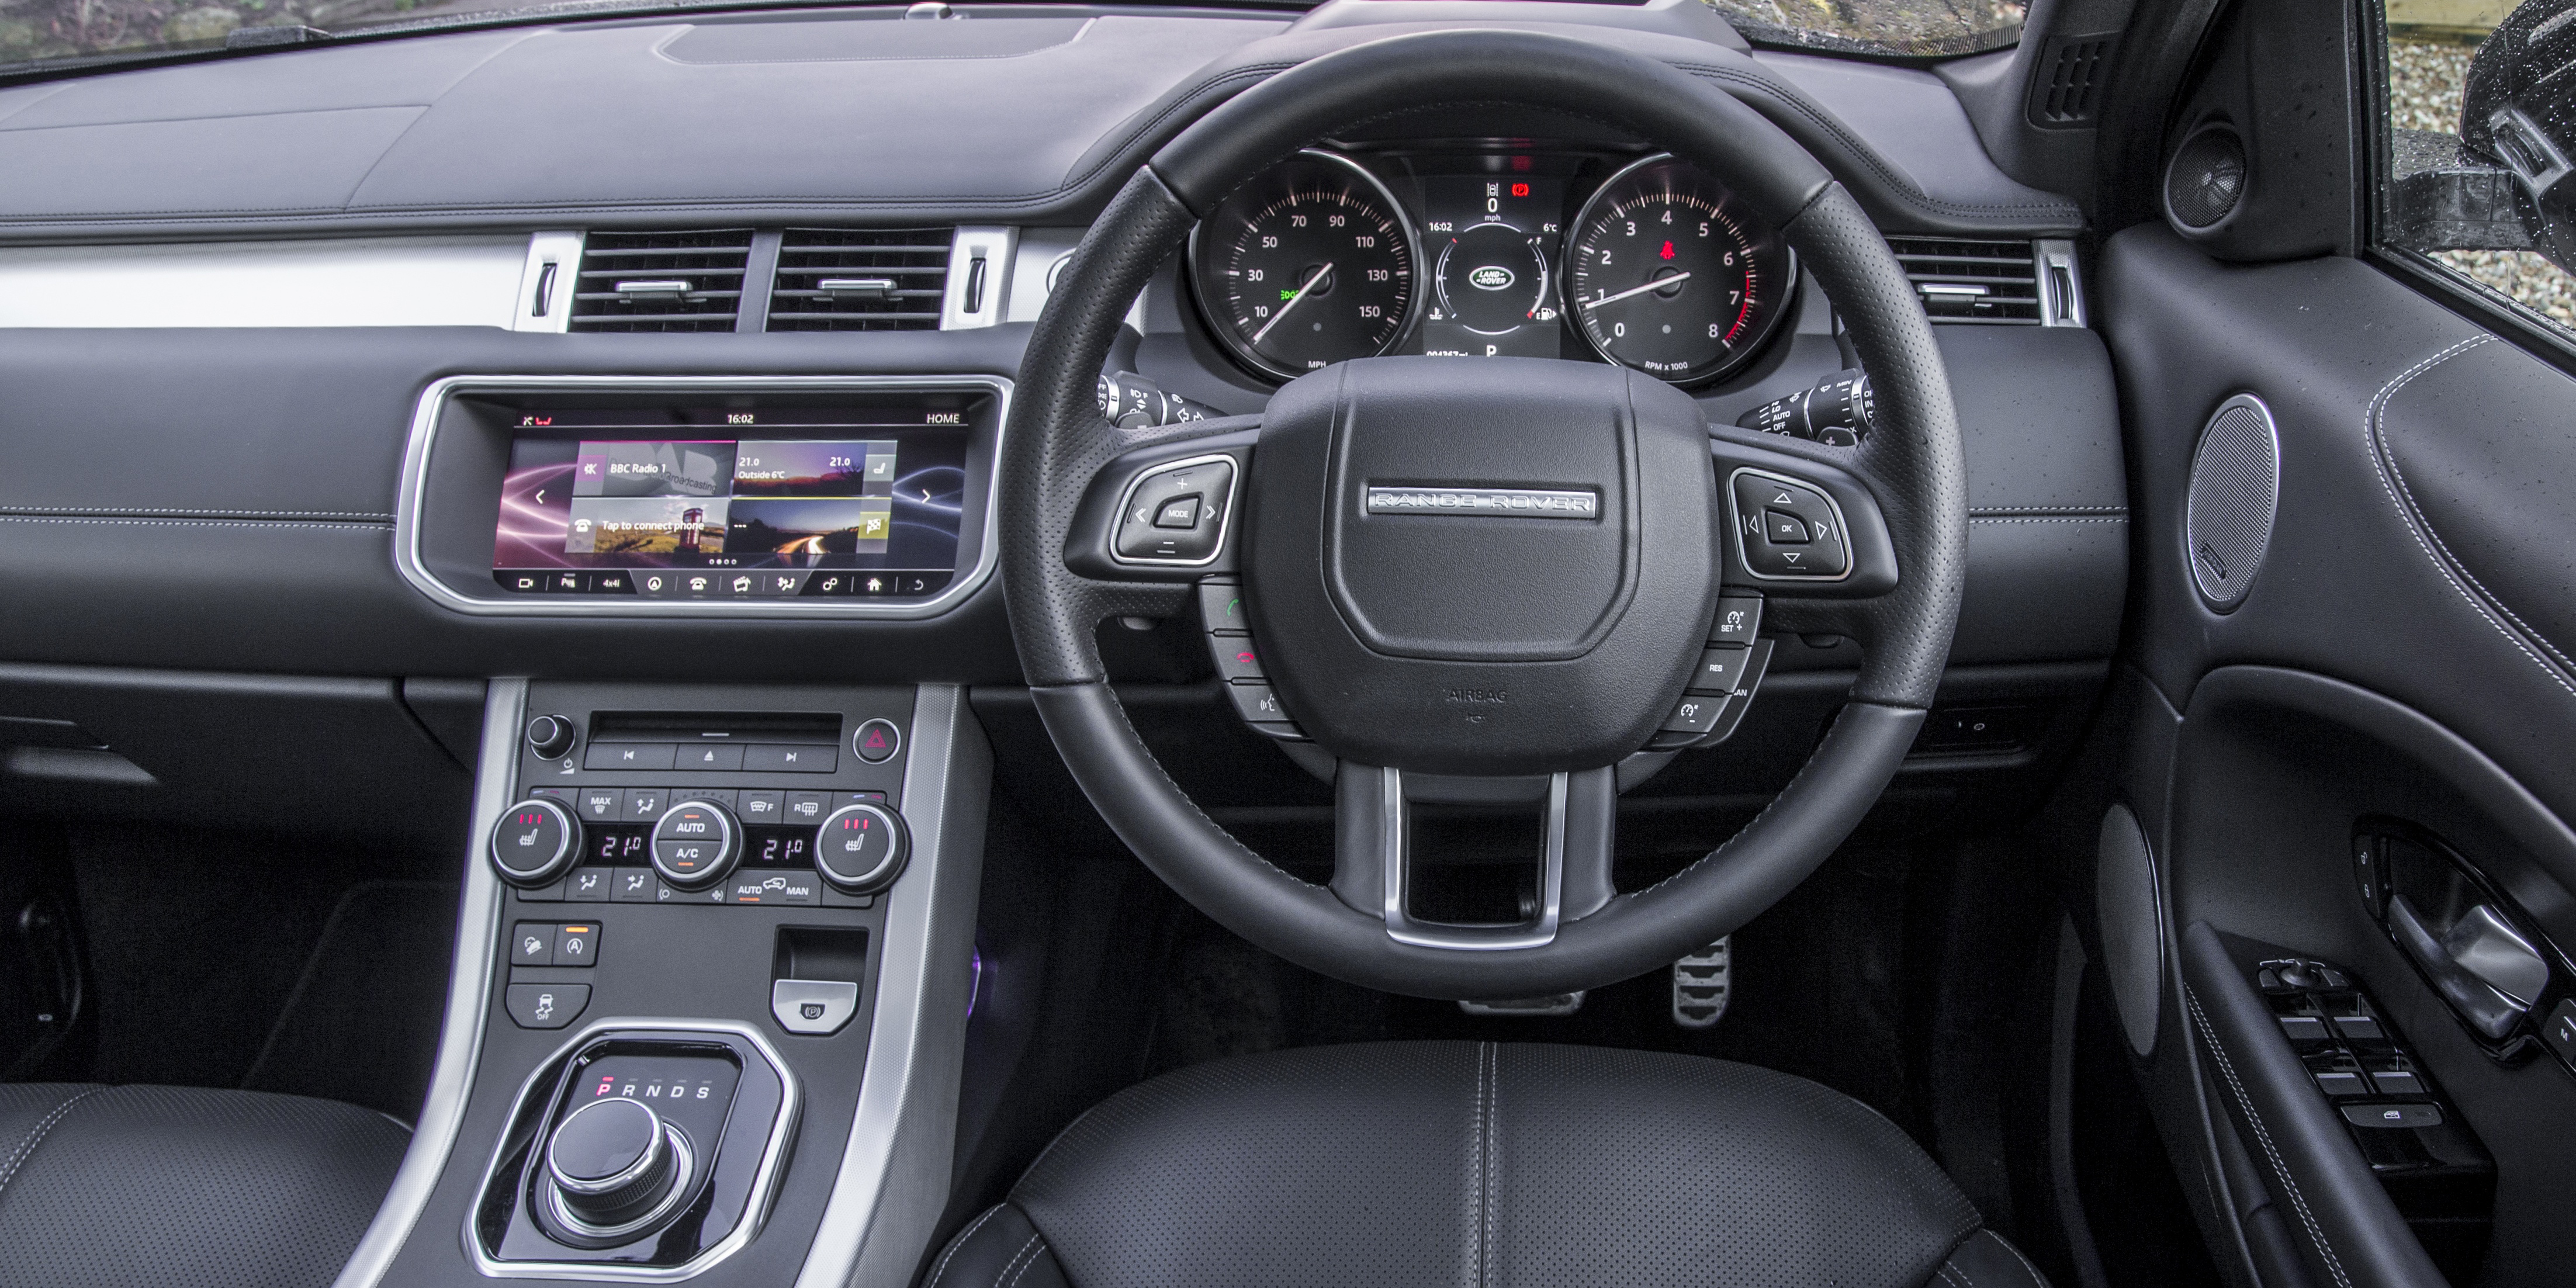 range rover evoque interior images galleries with a bite. Black Bedroom Furniture Sets. Home Design Ideas